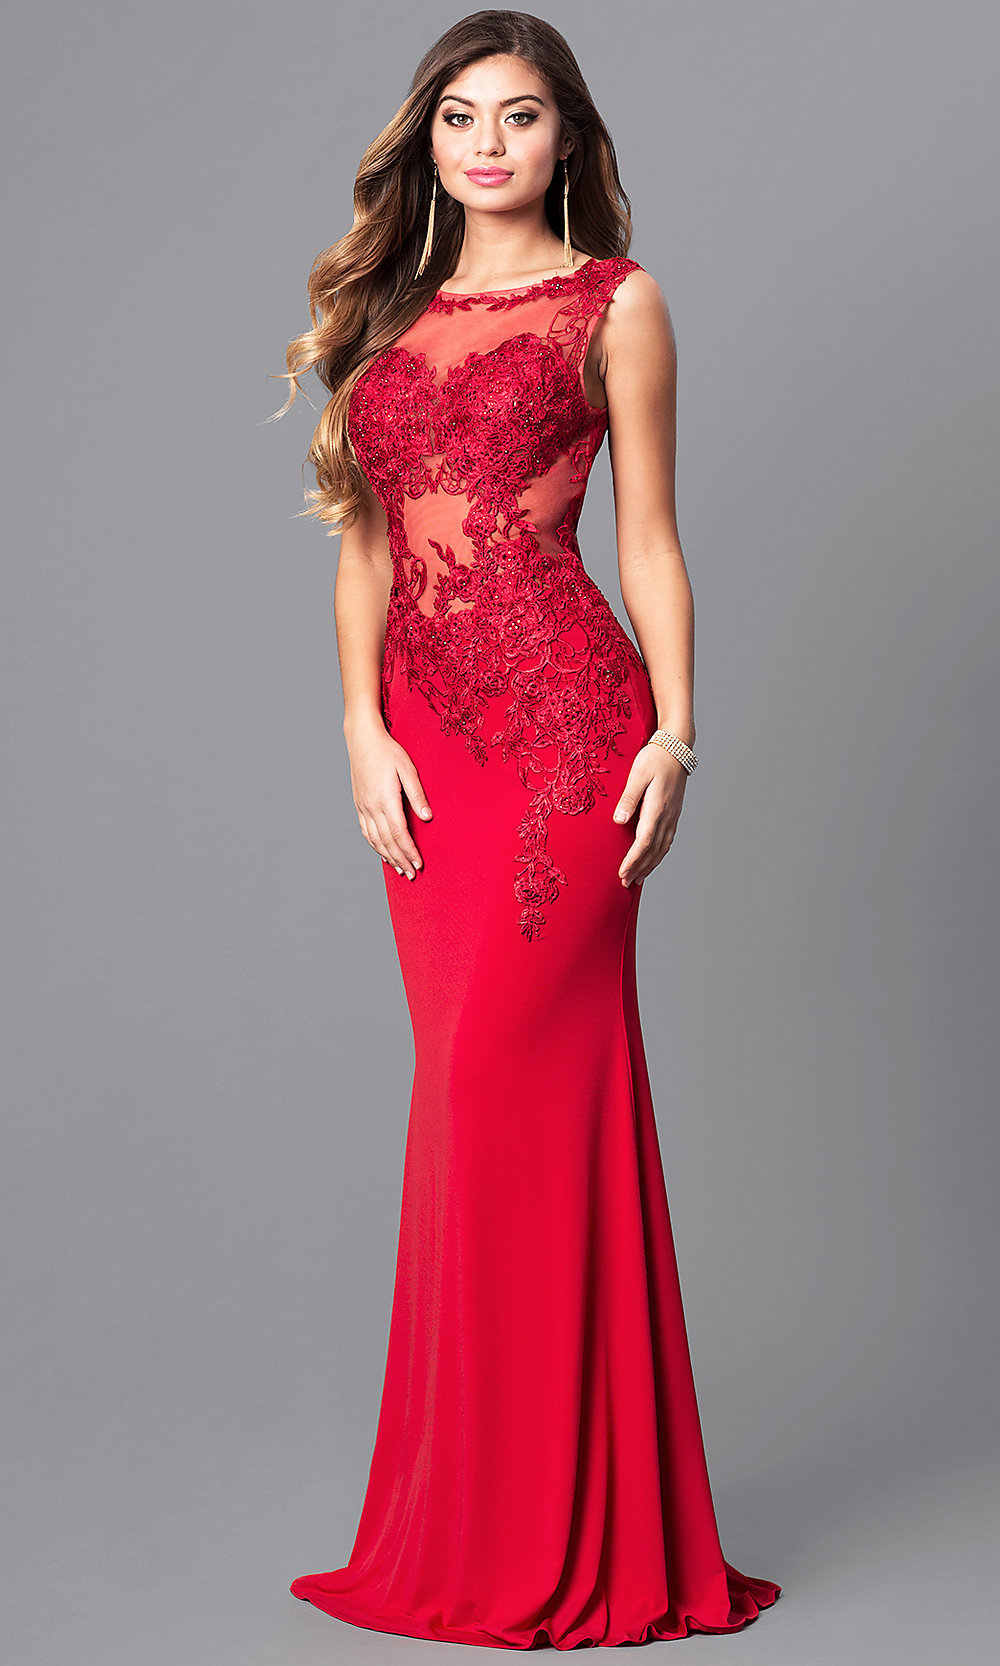 JVNX by Jovani Red Prom Dress with Lace - PromGirl